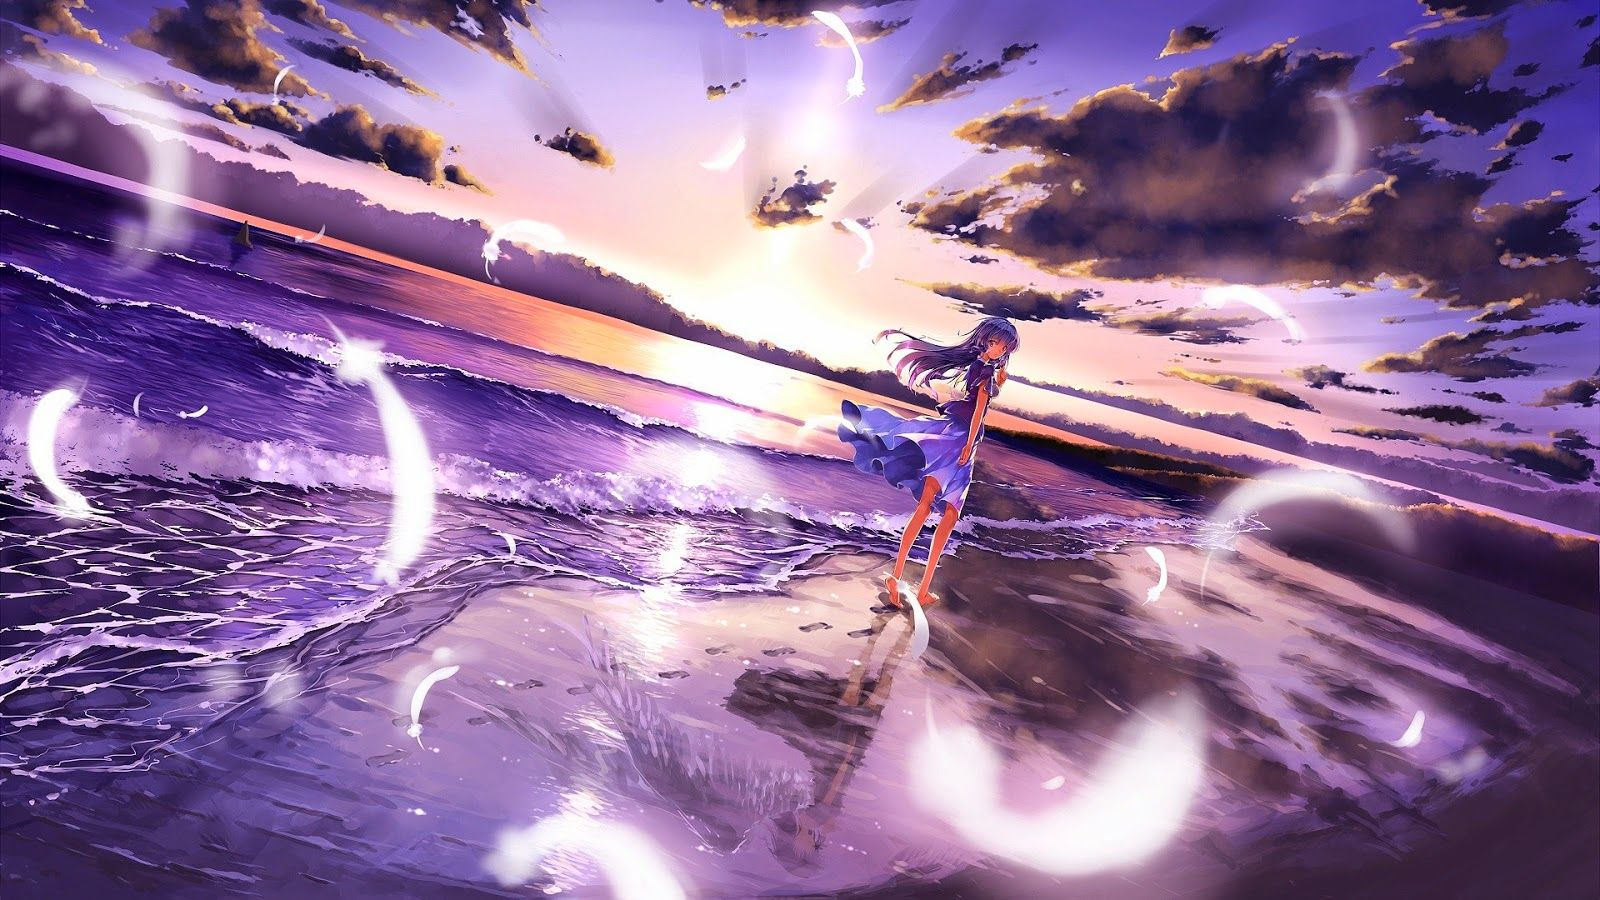 Animated Pink Beach Wallsheets Desktop Wallpapers And Backgrounds Anime Wallpaper 1920x1080 Anime Background Anime Scenery